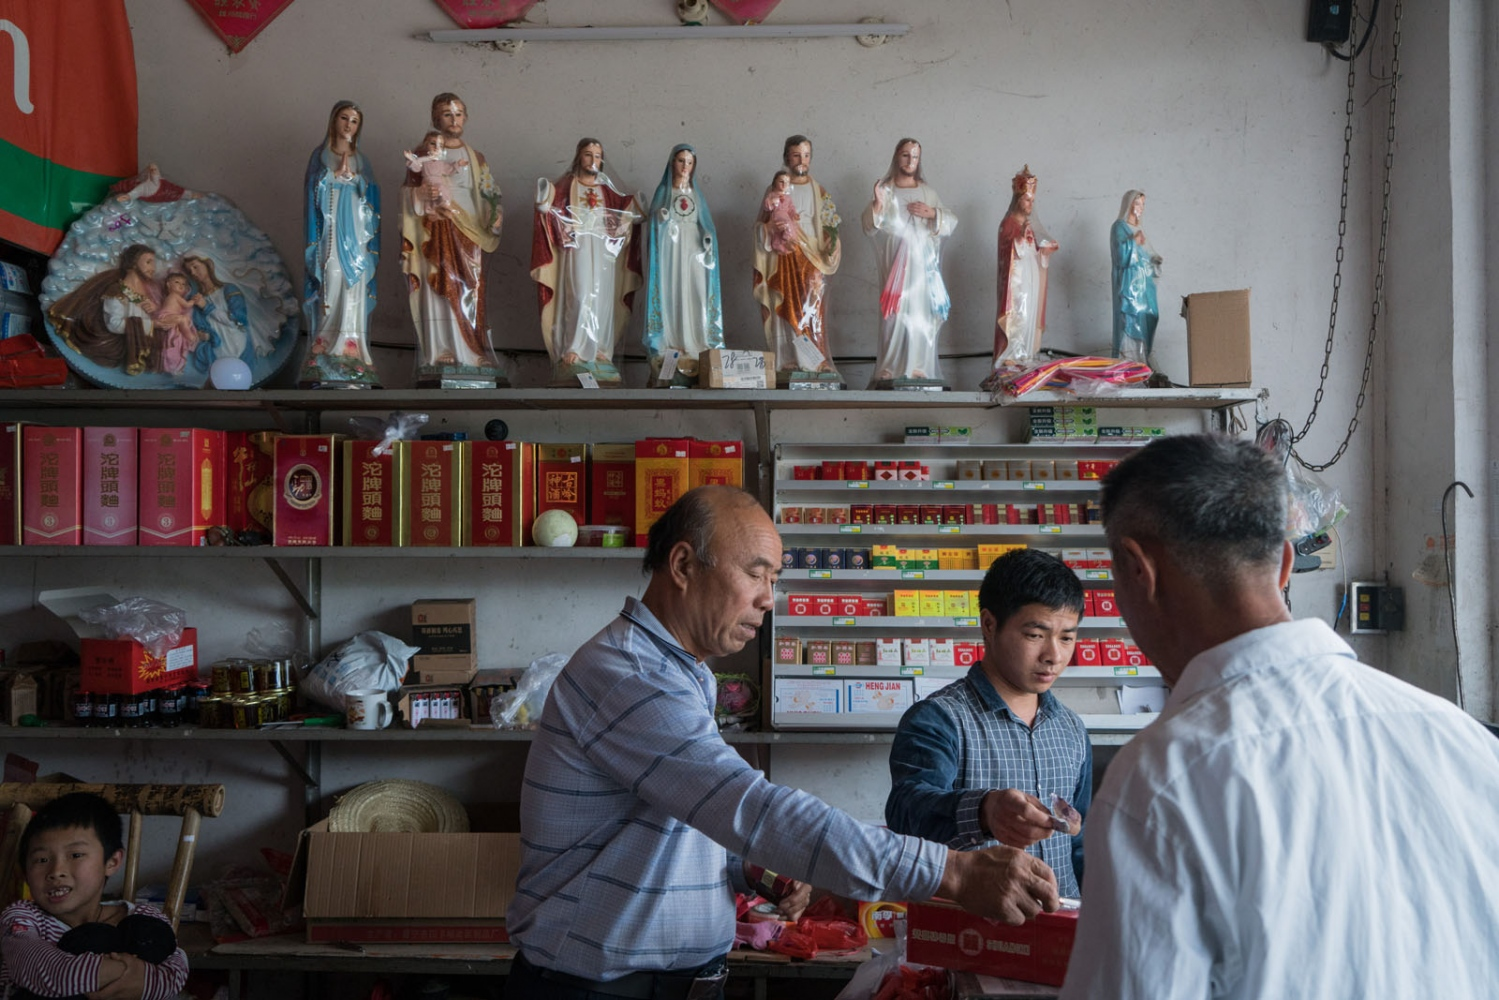 Small Catholic statues are on the shelf of a shop in Bobei village, in Guangdong province, China on March 4, 2018. About 800 people in the local community are Catholic.